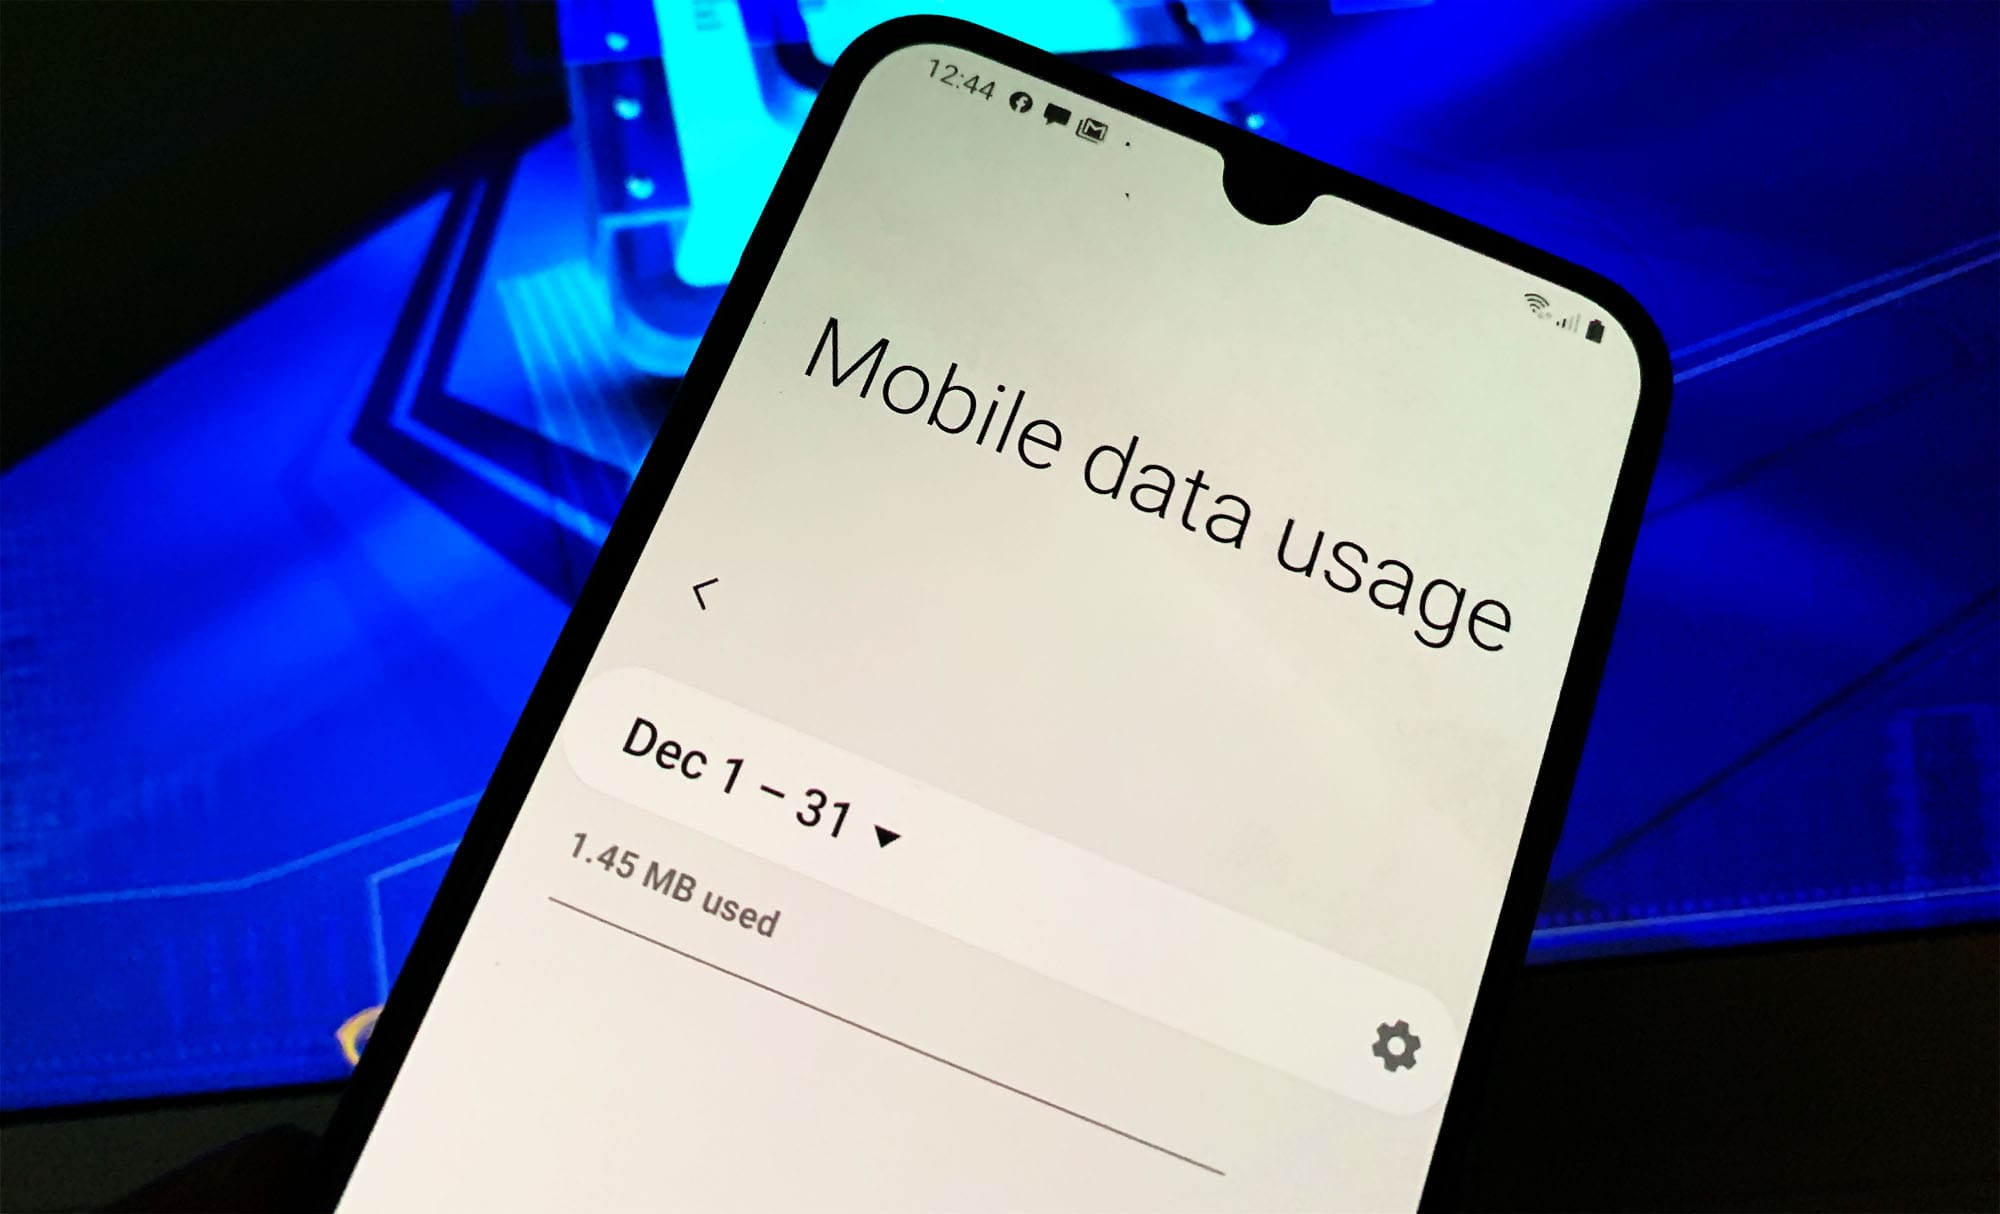 samsung galaxy a20, mobile data is not working, cellular data issues,